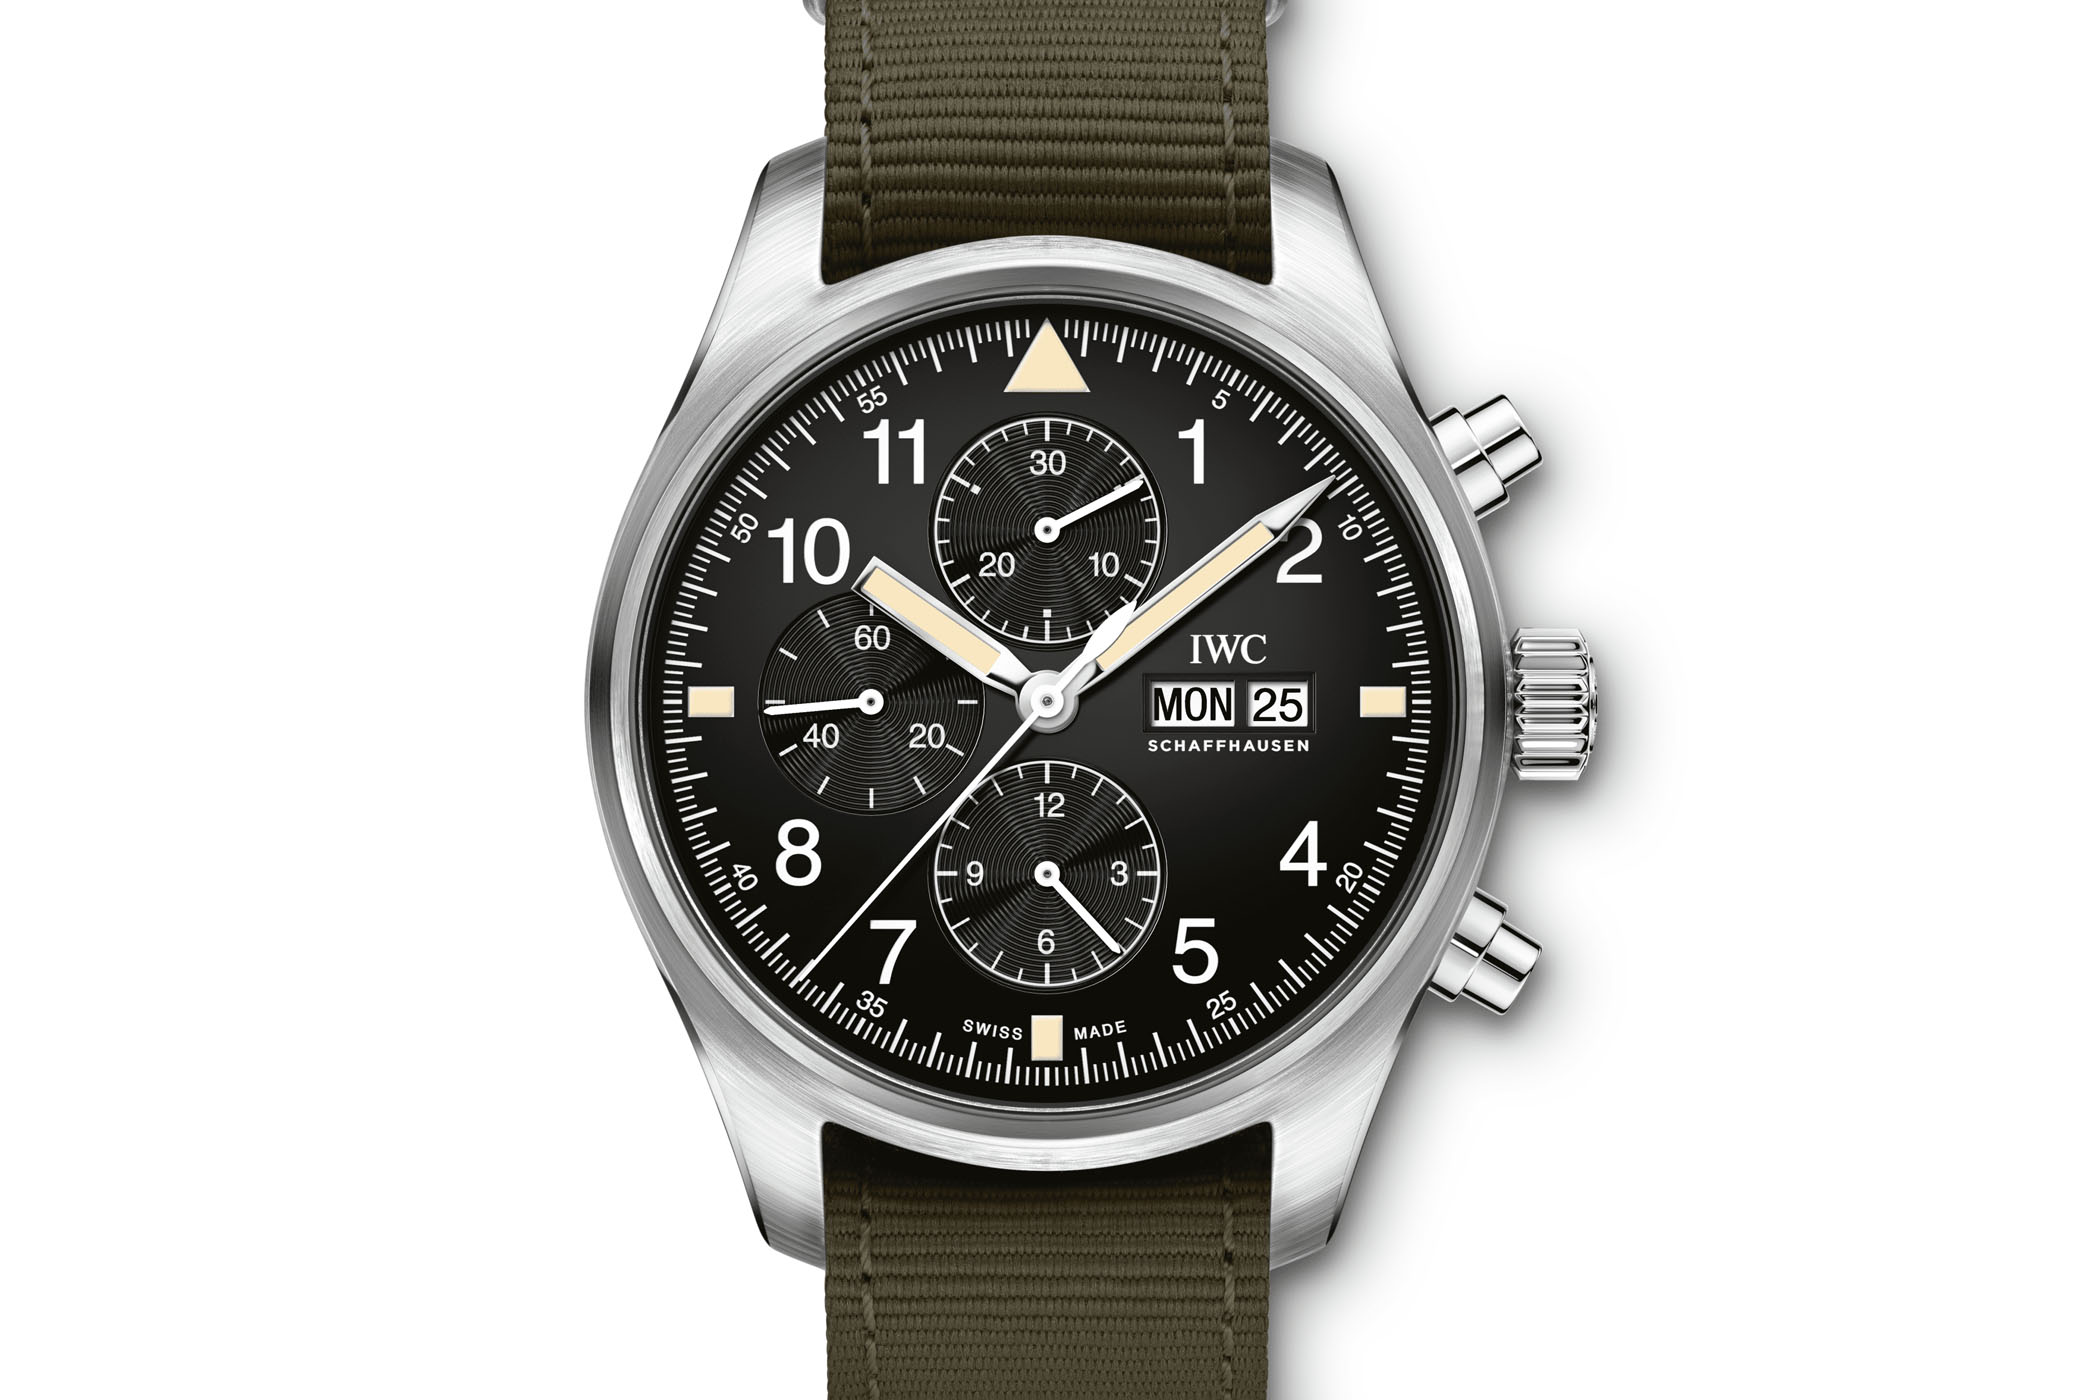 IWC-Pilots-Watch-Chronograph-IW377724-5.